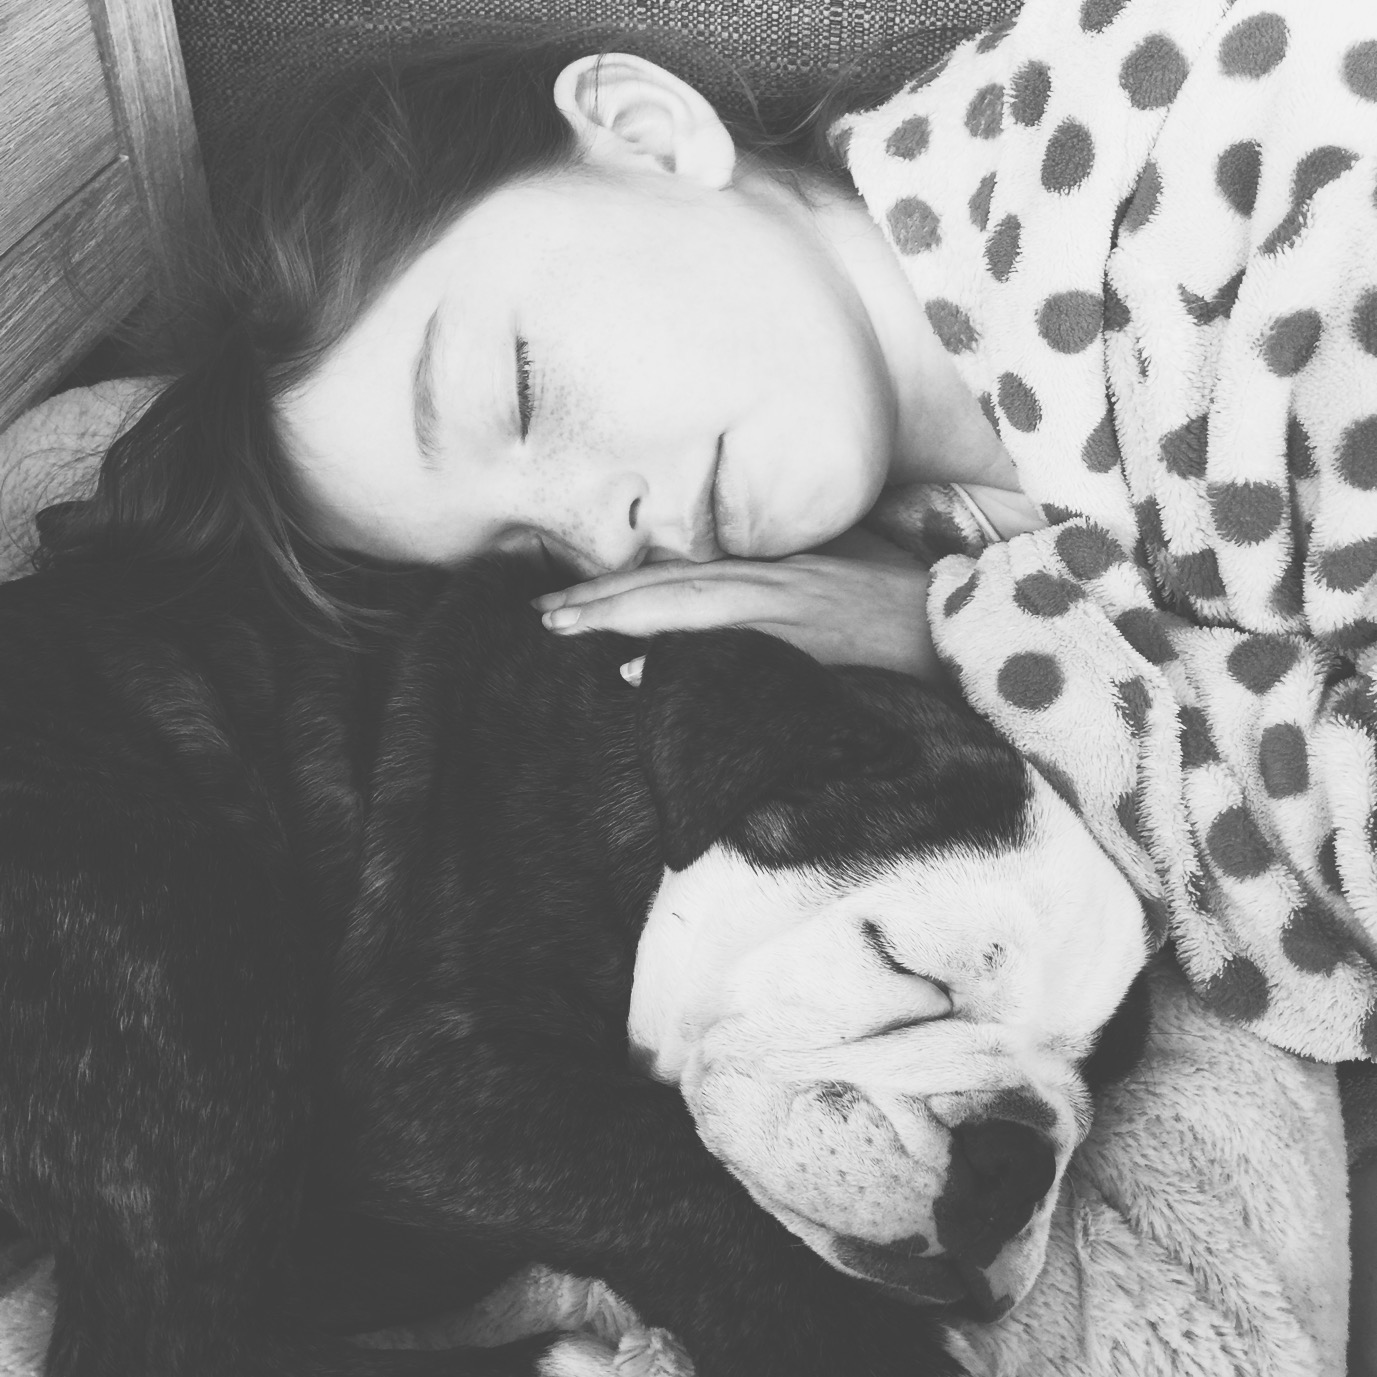 Having pets can teach children so much love and compassion